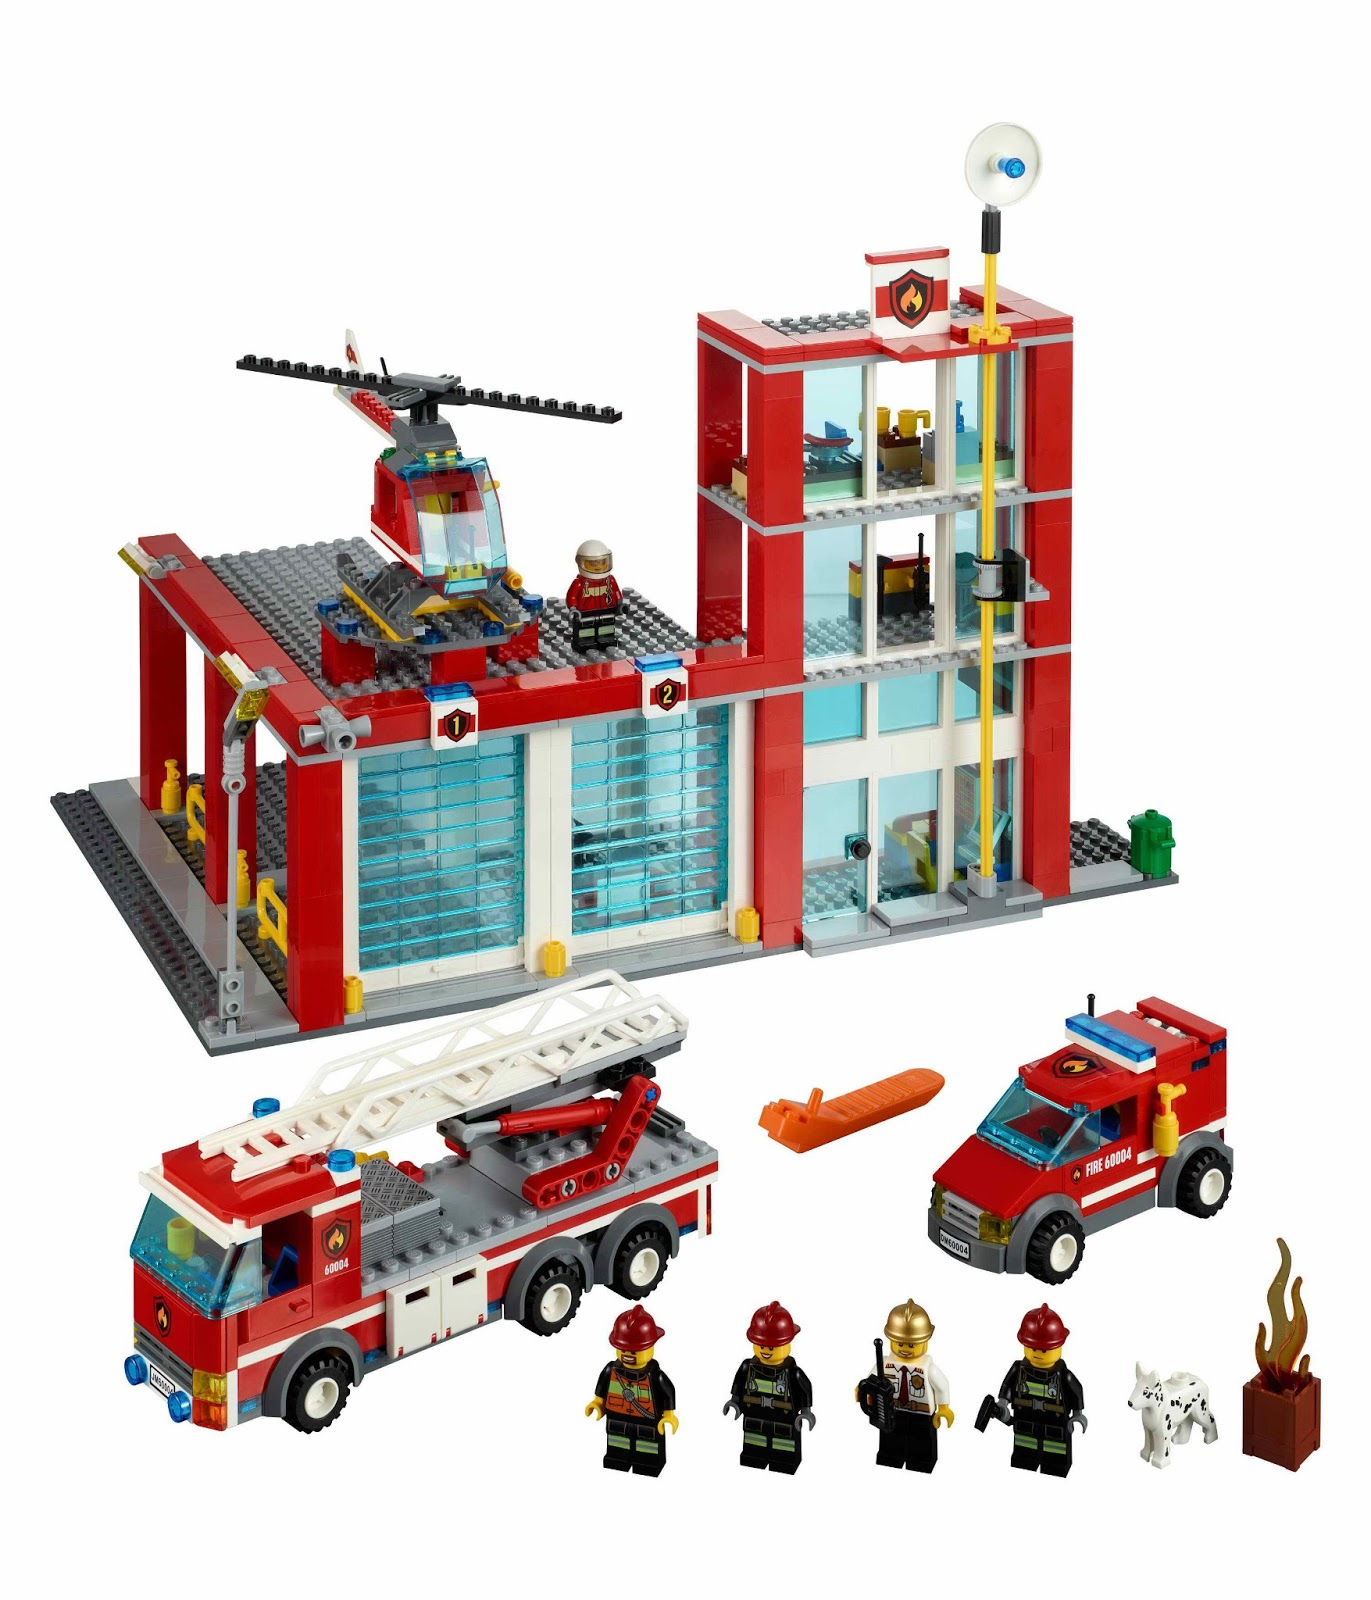 mini helicopter toy with Set Database Lego 60004 Fire Station on Set Database Lego 60004 Fire Station also P903 likewise New Summer Lego Marvel Set Images And Descriptions Posted To Argos And German Lego Catalog furthermore Watch moreover 504755070707483804.